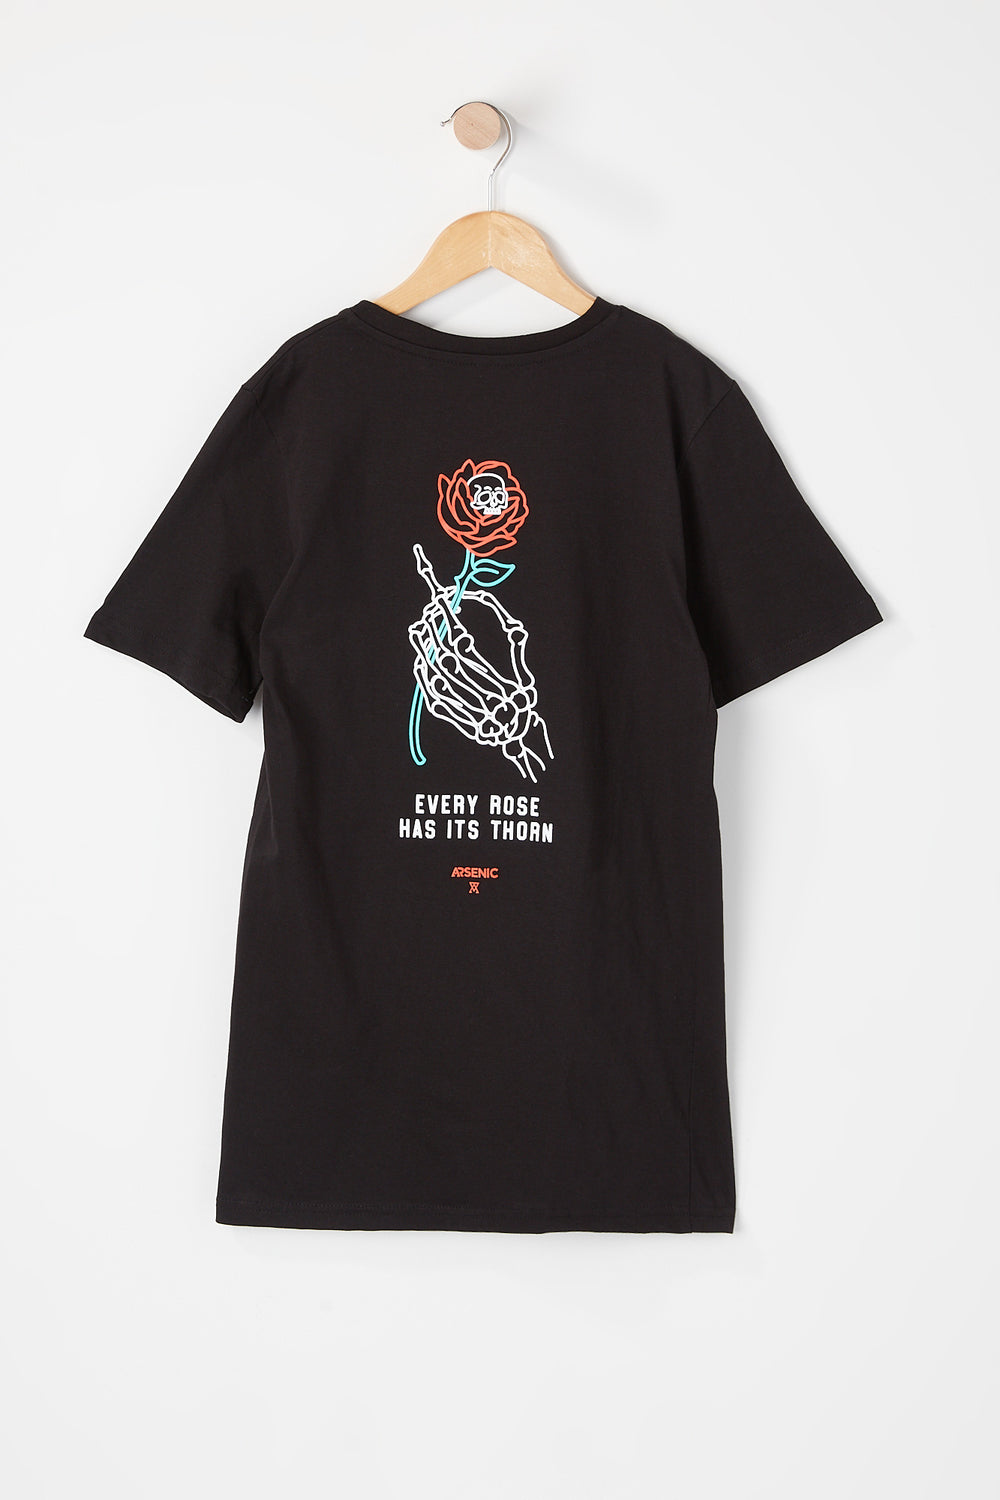 T-Shirt Every Rose Has Its Thorn Arsenic Junior Noir